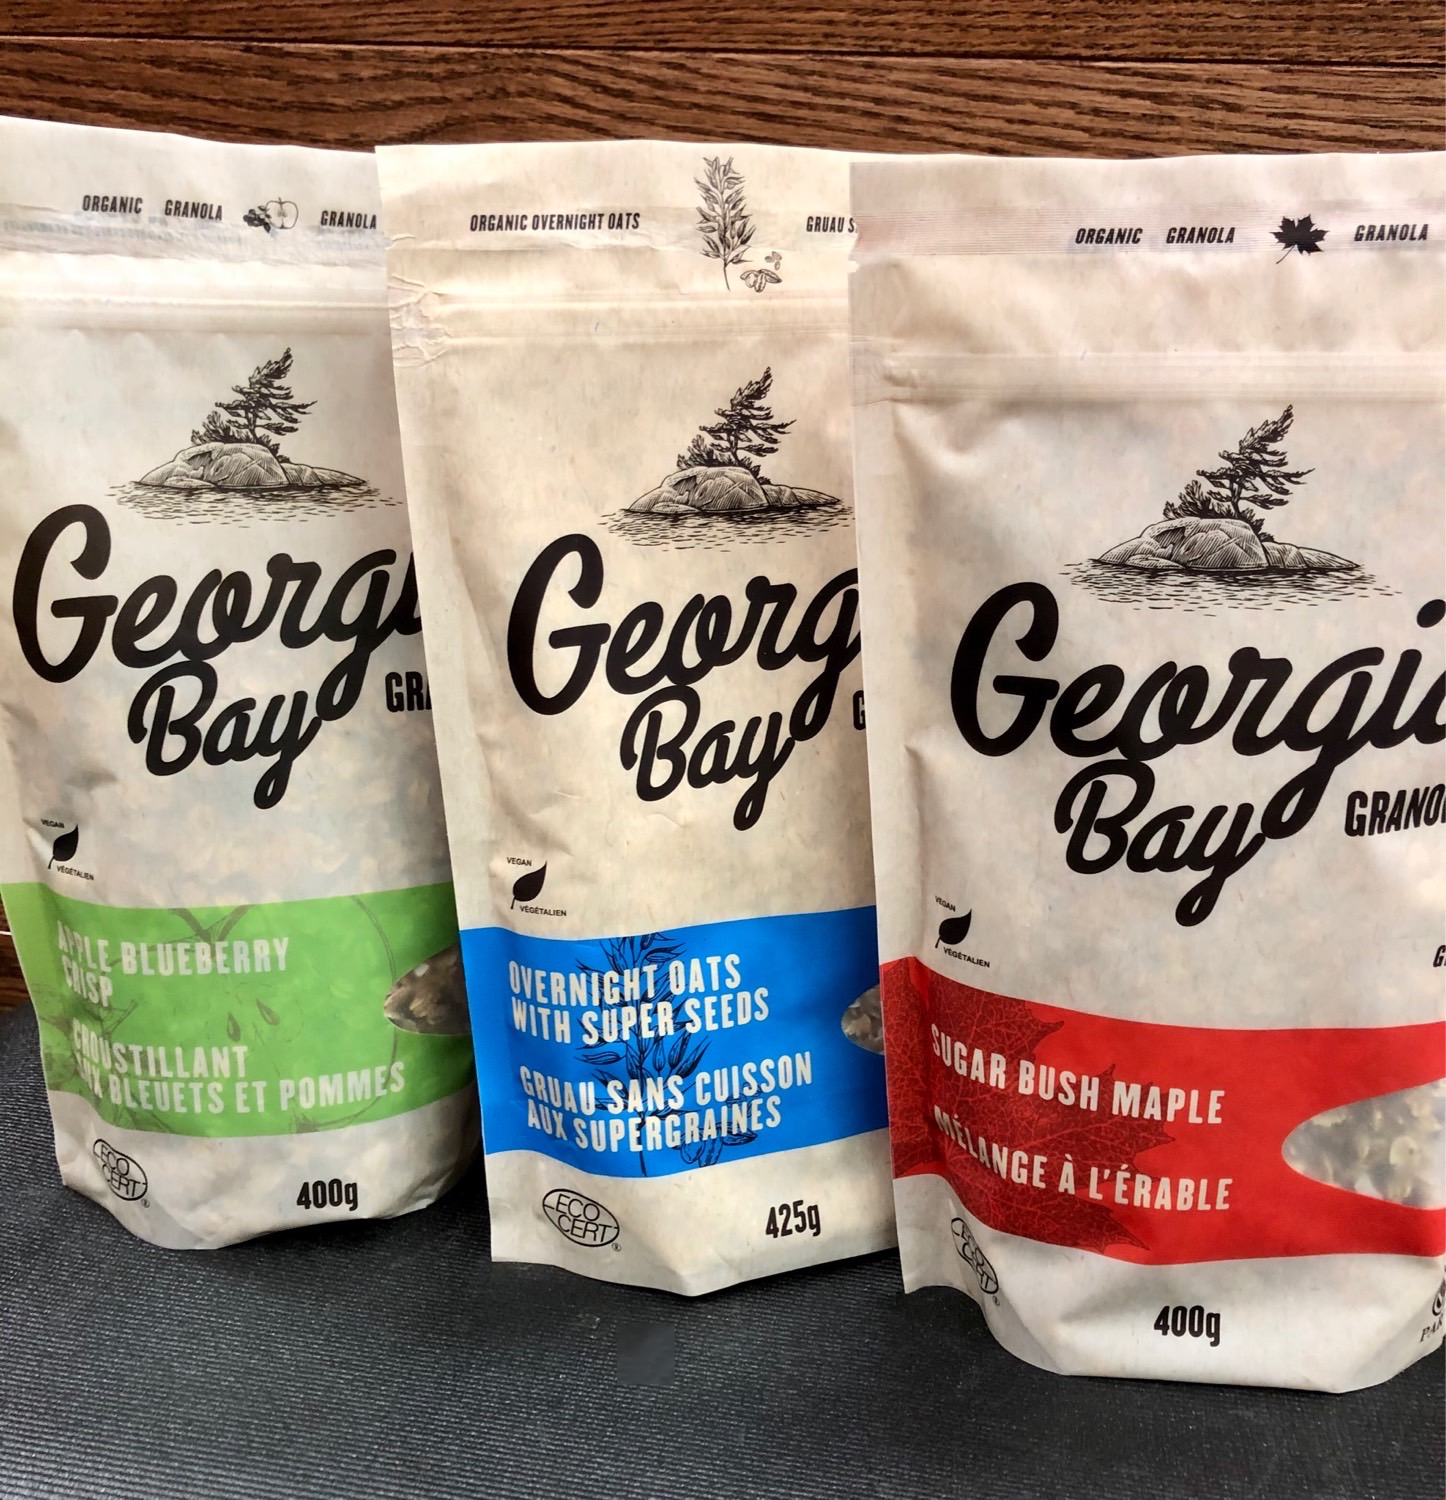 Georgia Bay Granola